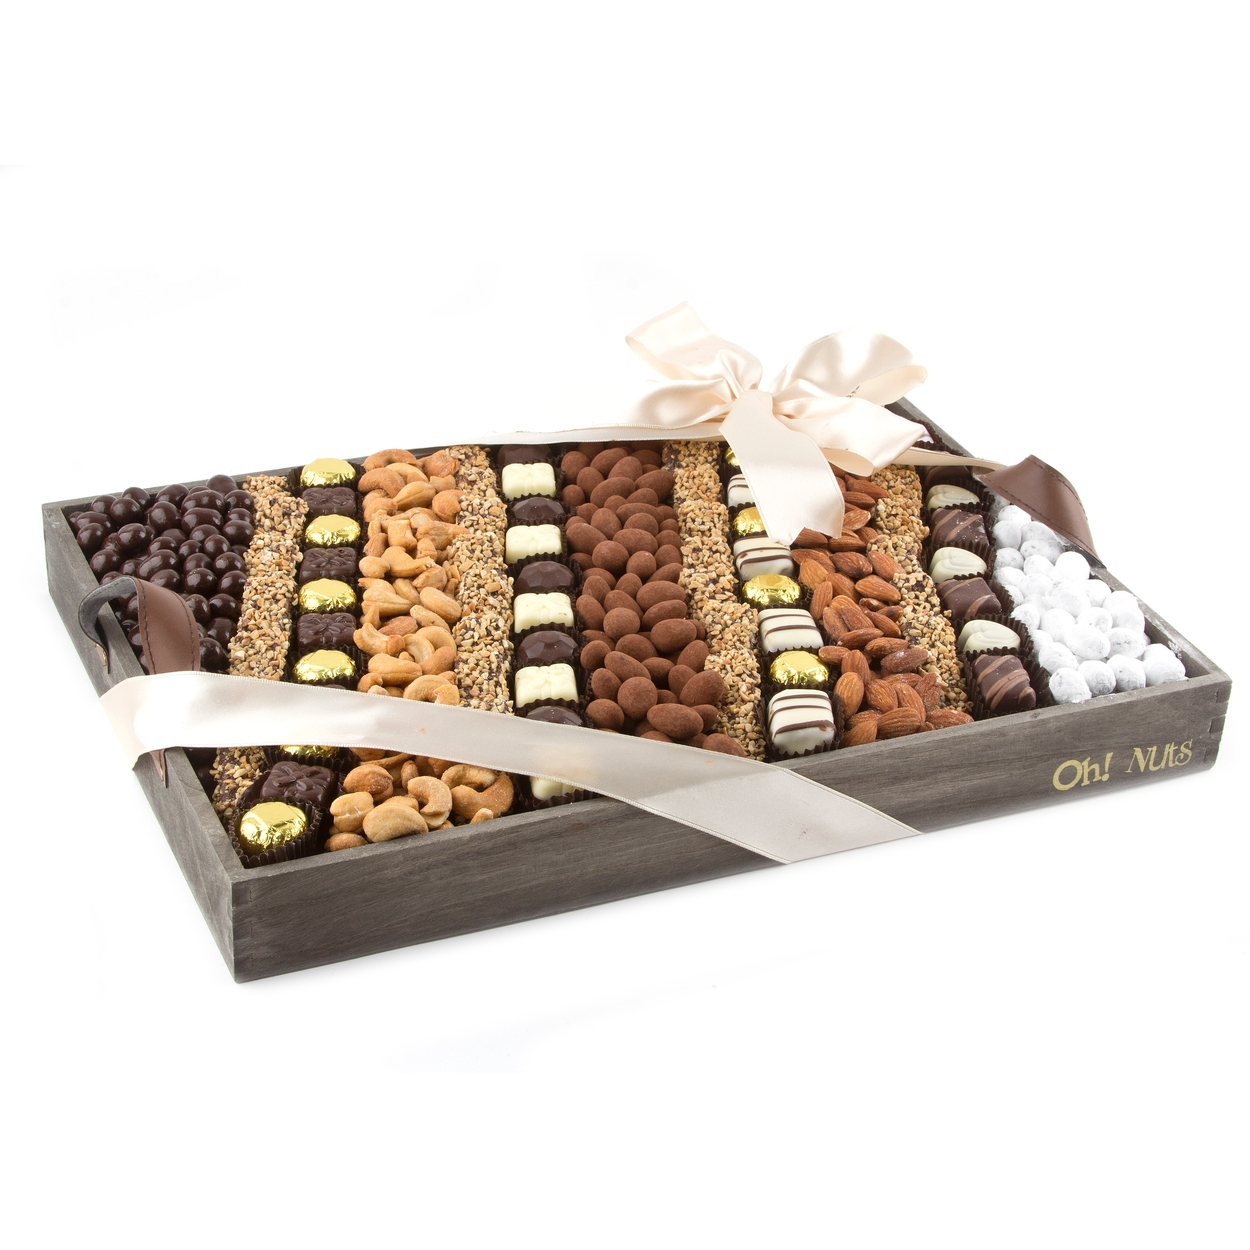 Large Nuts & Chocolate Line-Up Gift Basket • Nuts & Chocolate ...